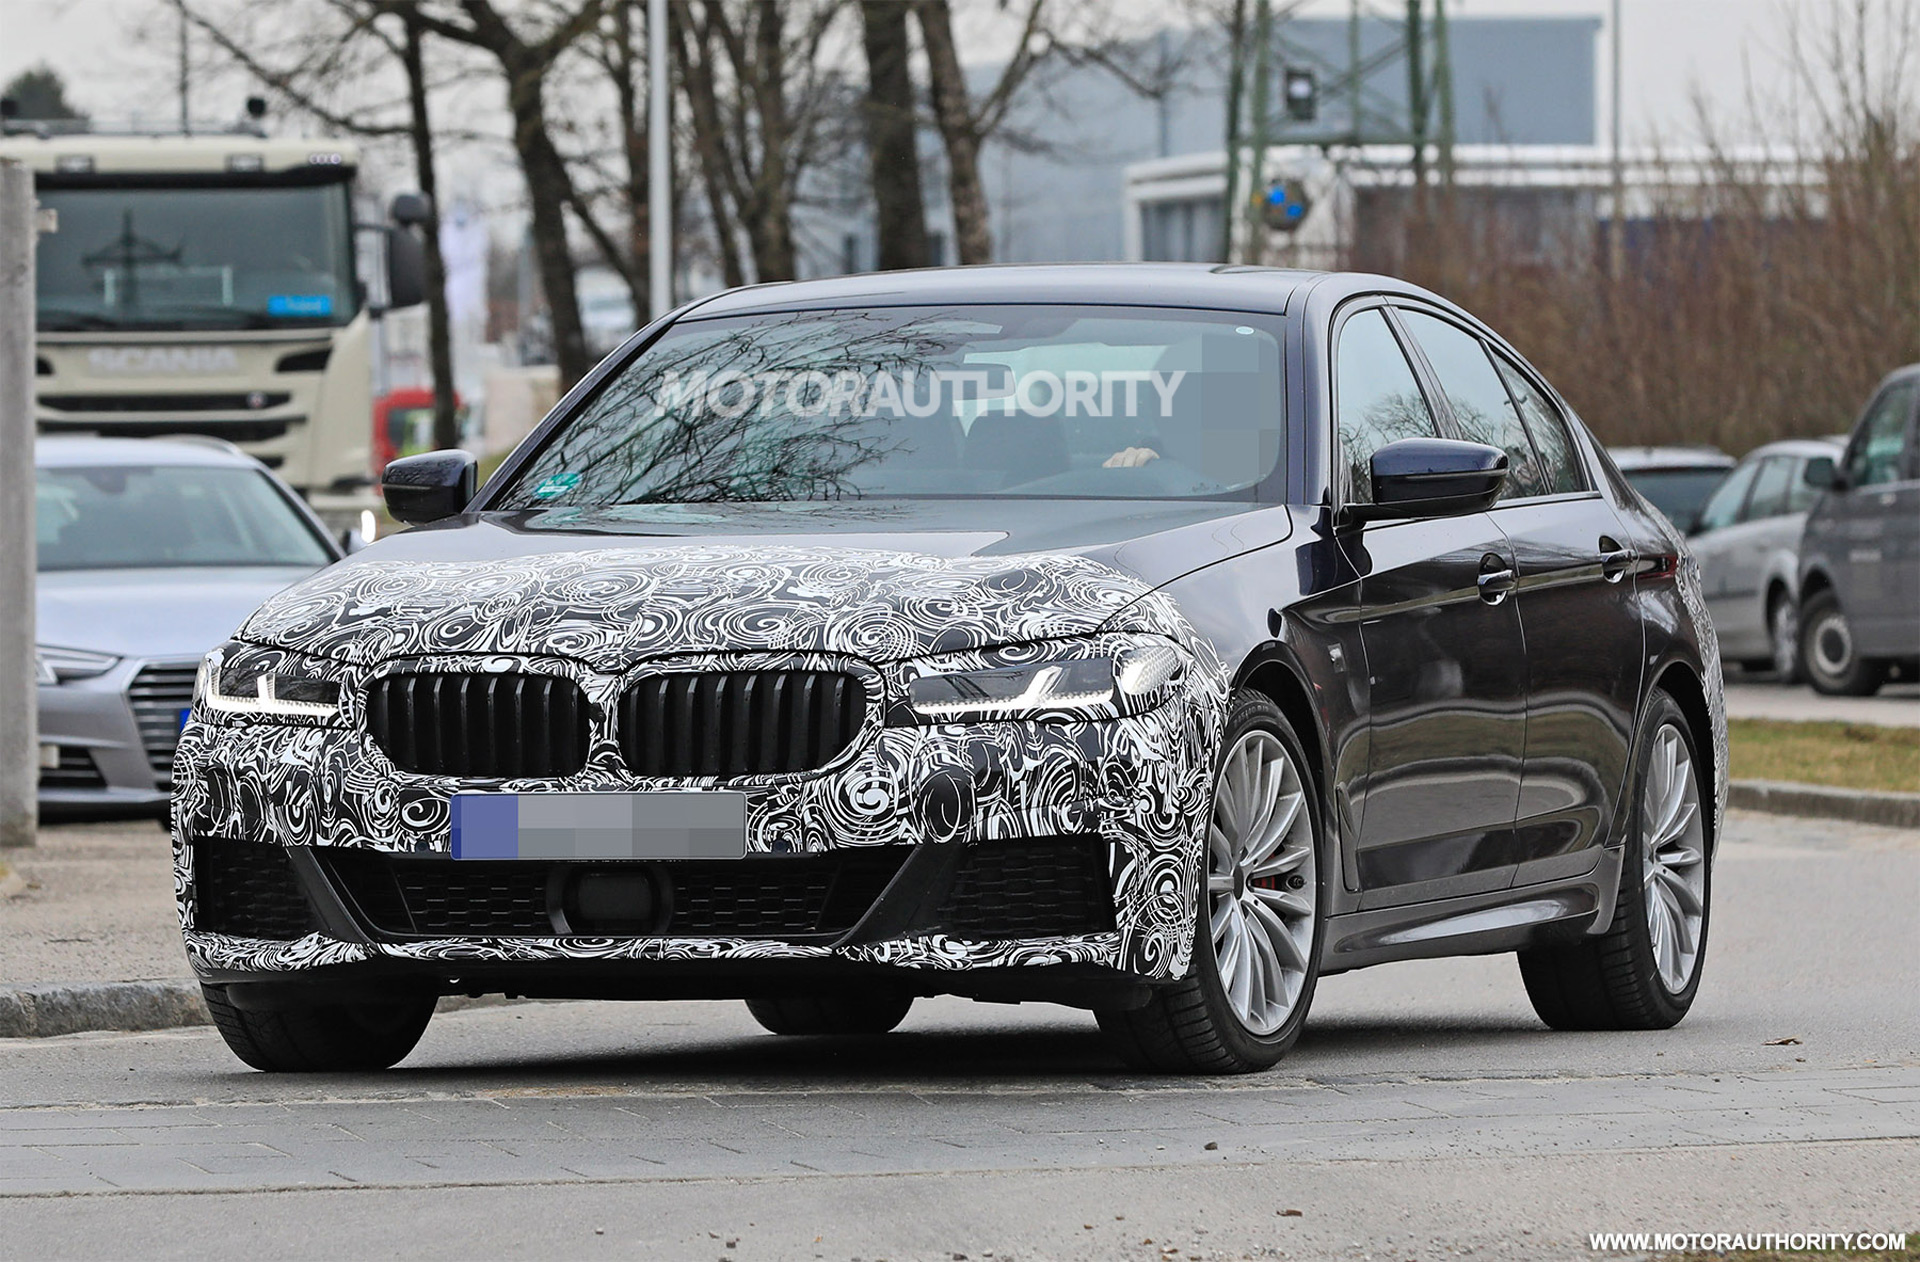 2021 Spy Shots BMW 3 Series Release Date and Concept